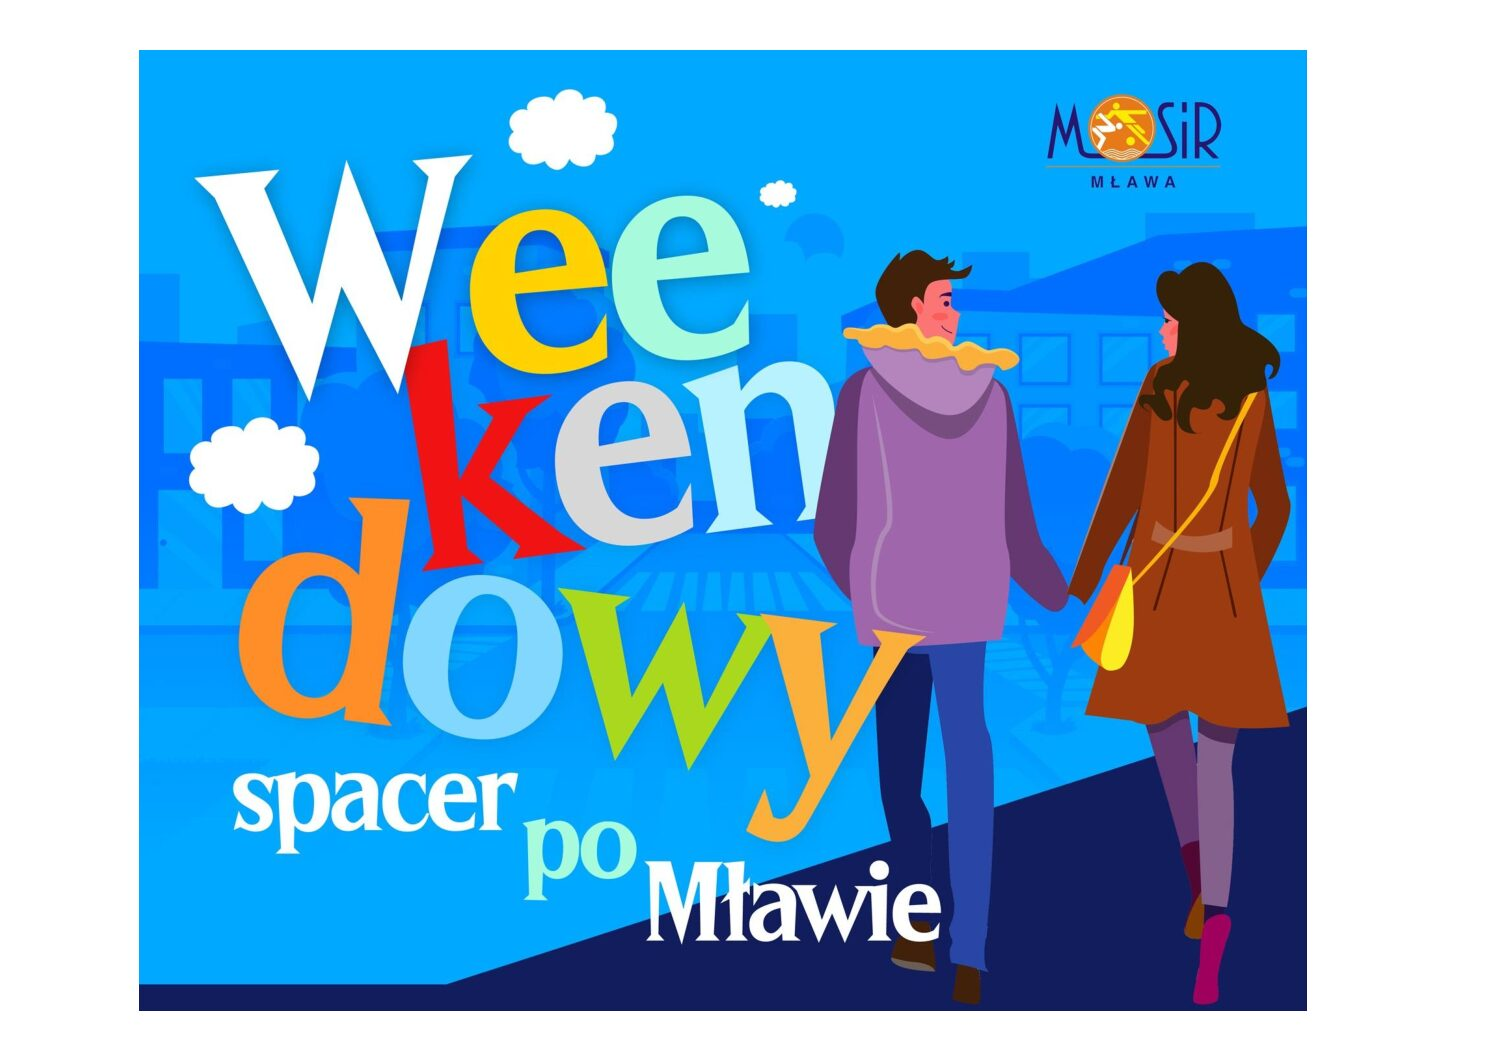 """Weekendowy spacer po Mławie"""